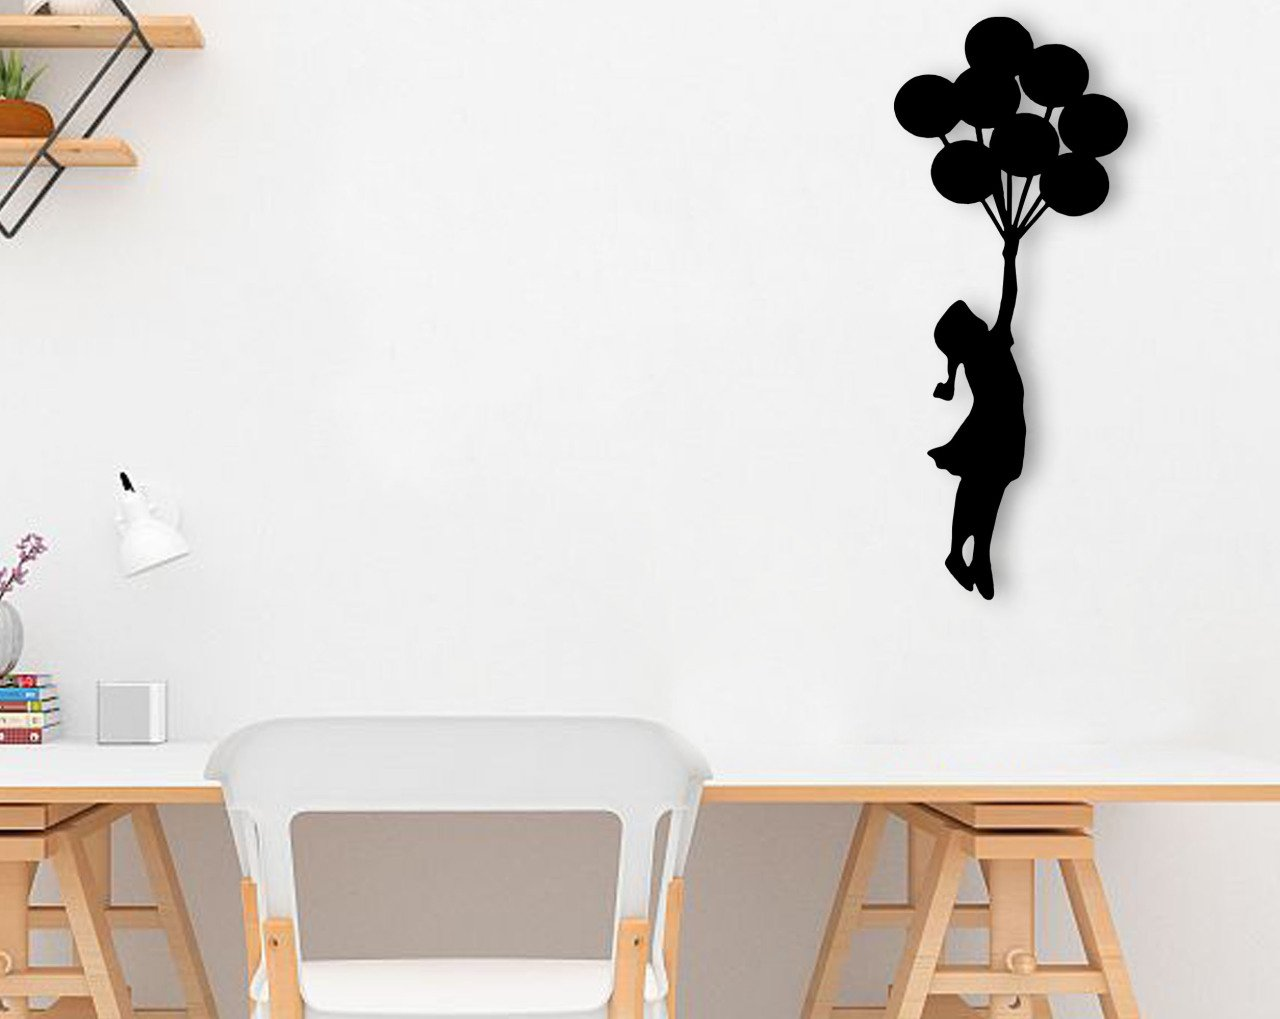 BK Home Flying Balloon Wood Wall Decoration Modern Convenient Reliable Decoration Gift Quality Design Simple Cool Black Color